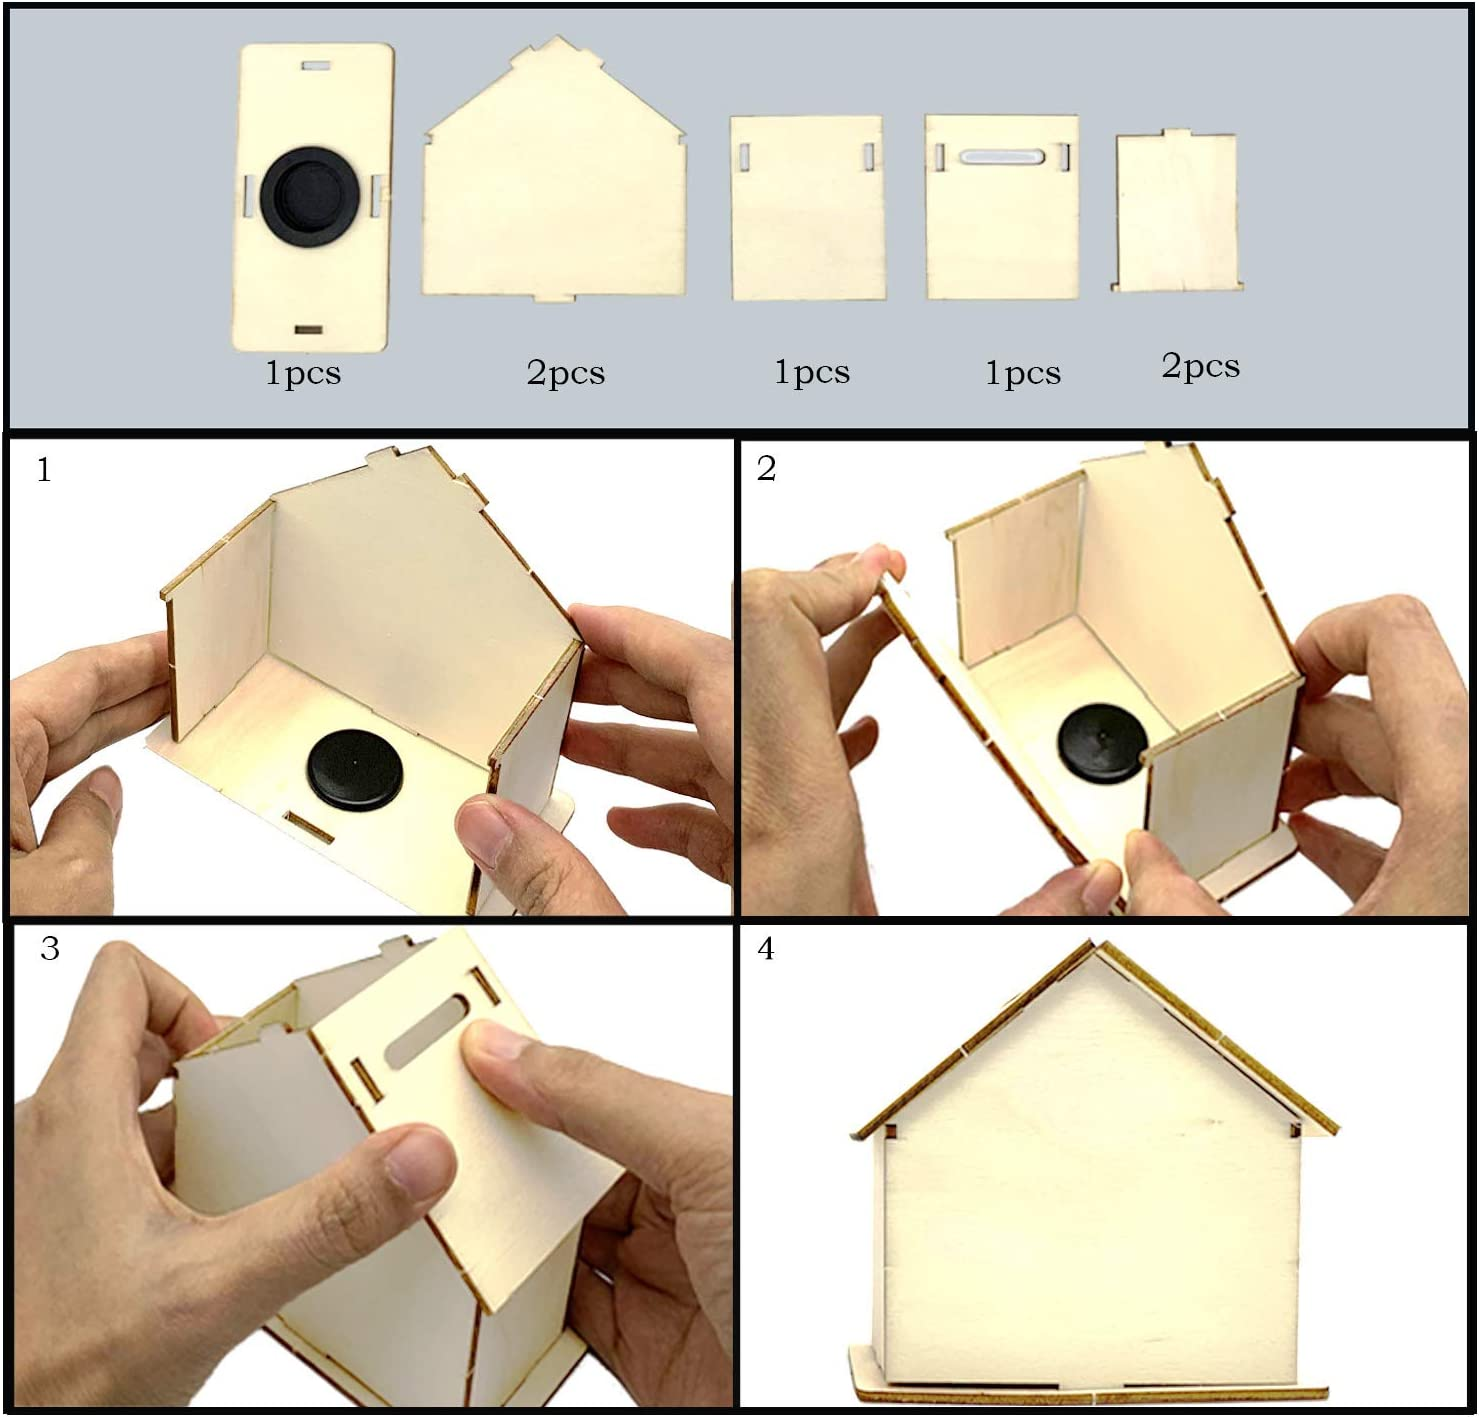 DToppx DIY House Kit for Kids 4 Pack Wooden House Coin Money Bank with Stickers Birthday Gift Craft for Boys Girls Money Coin Box Craft Kids Arts and Crafts